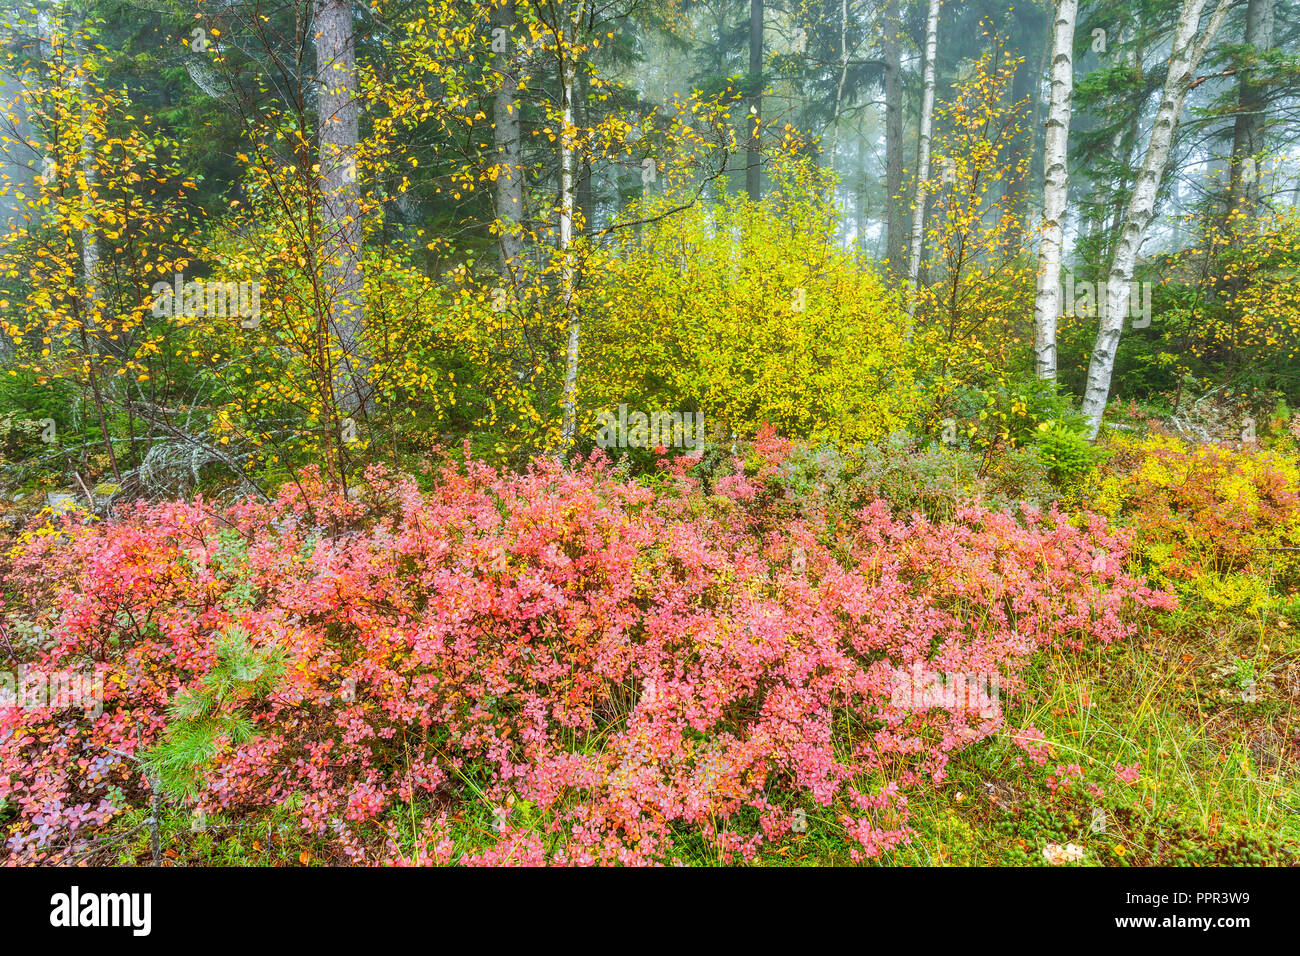 Autumn colors in a forest with fog - Stock Image